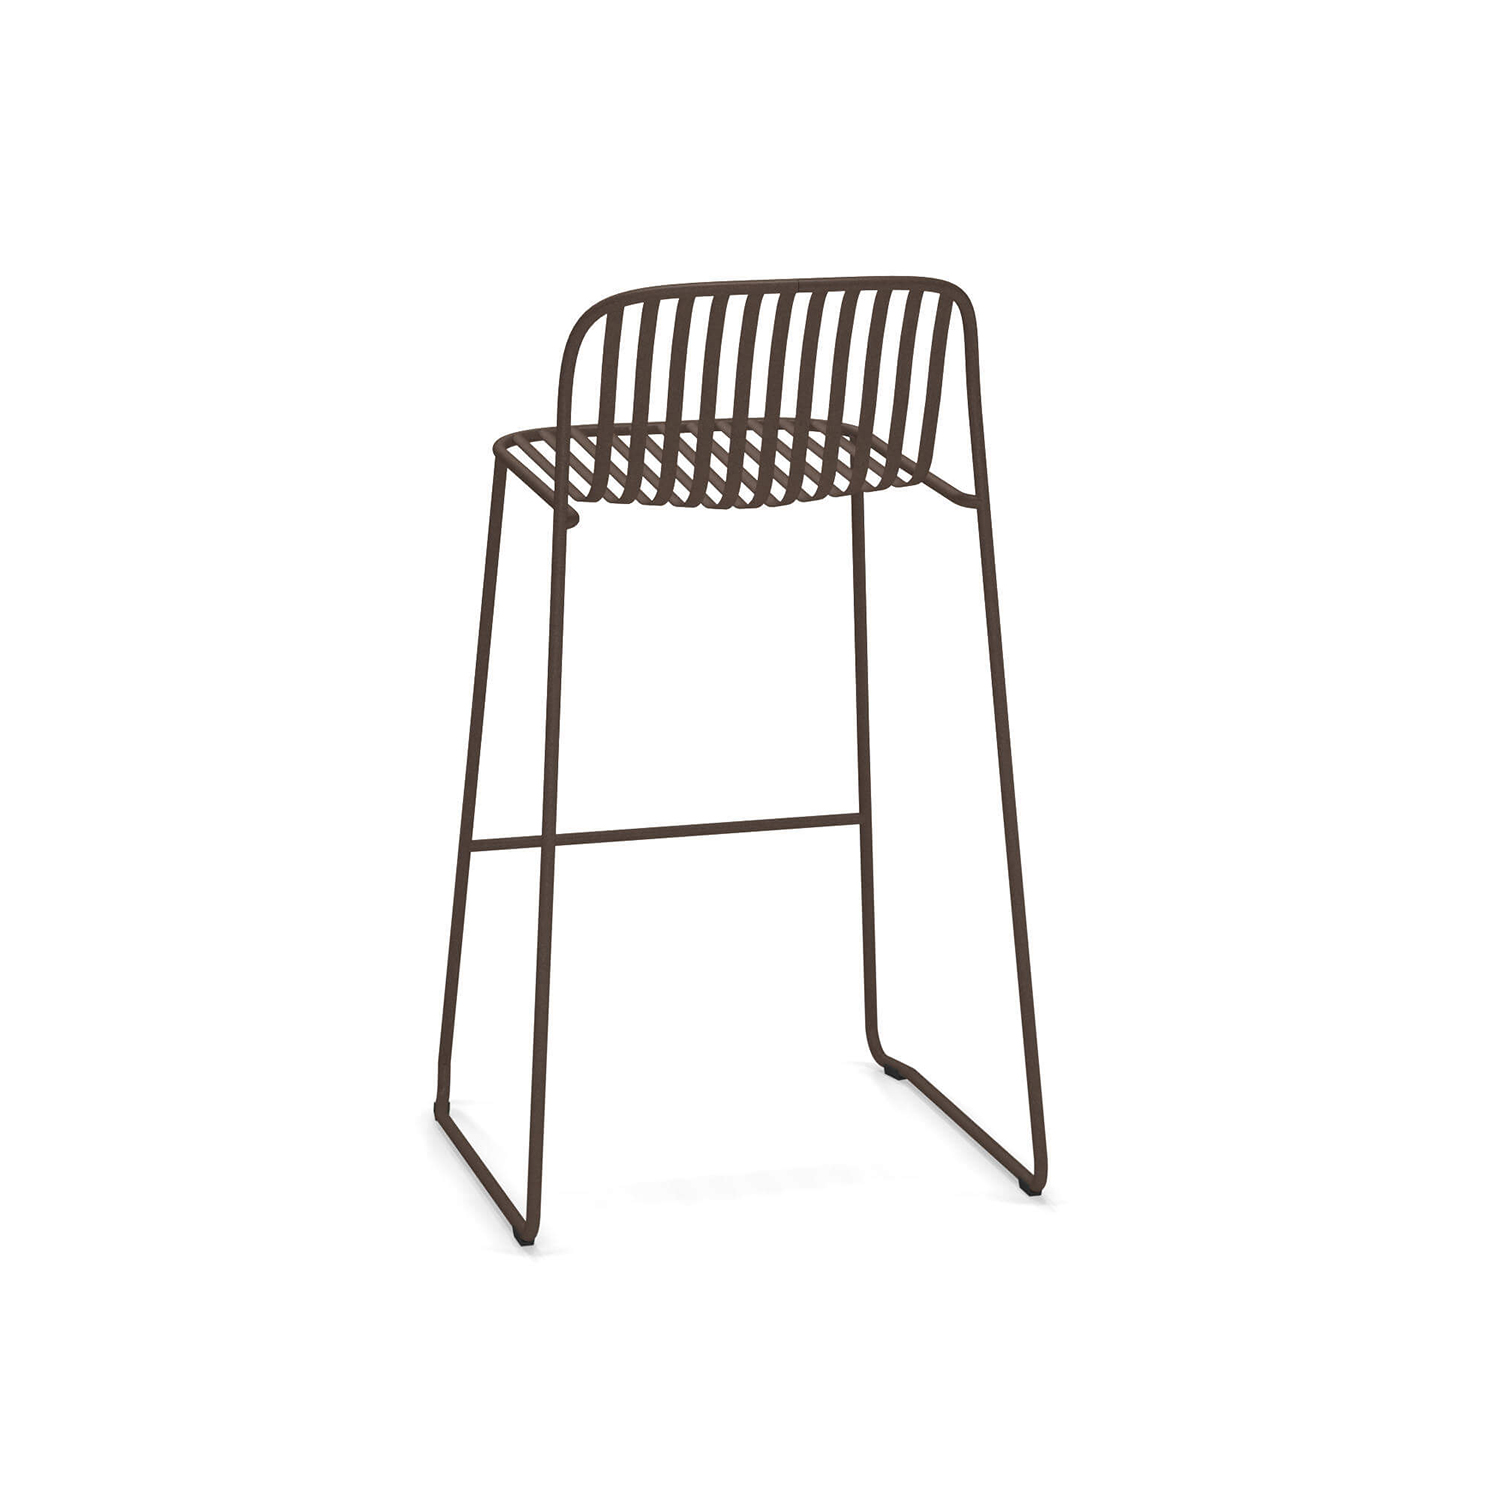 Riviera Barstool - Set of 2 - The Riviera Barstool - Set of 2 is a set of 2 barstools. The frame is made from steel and these stools look perfect as a two or you can buy another set and have four. 